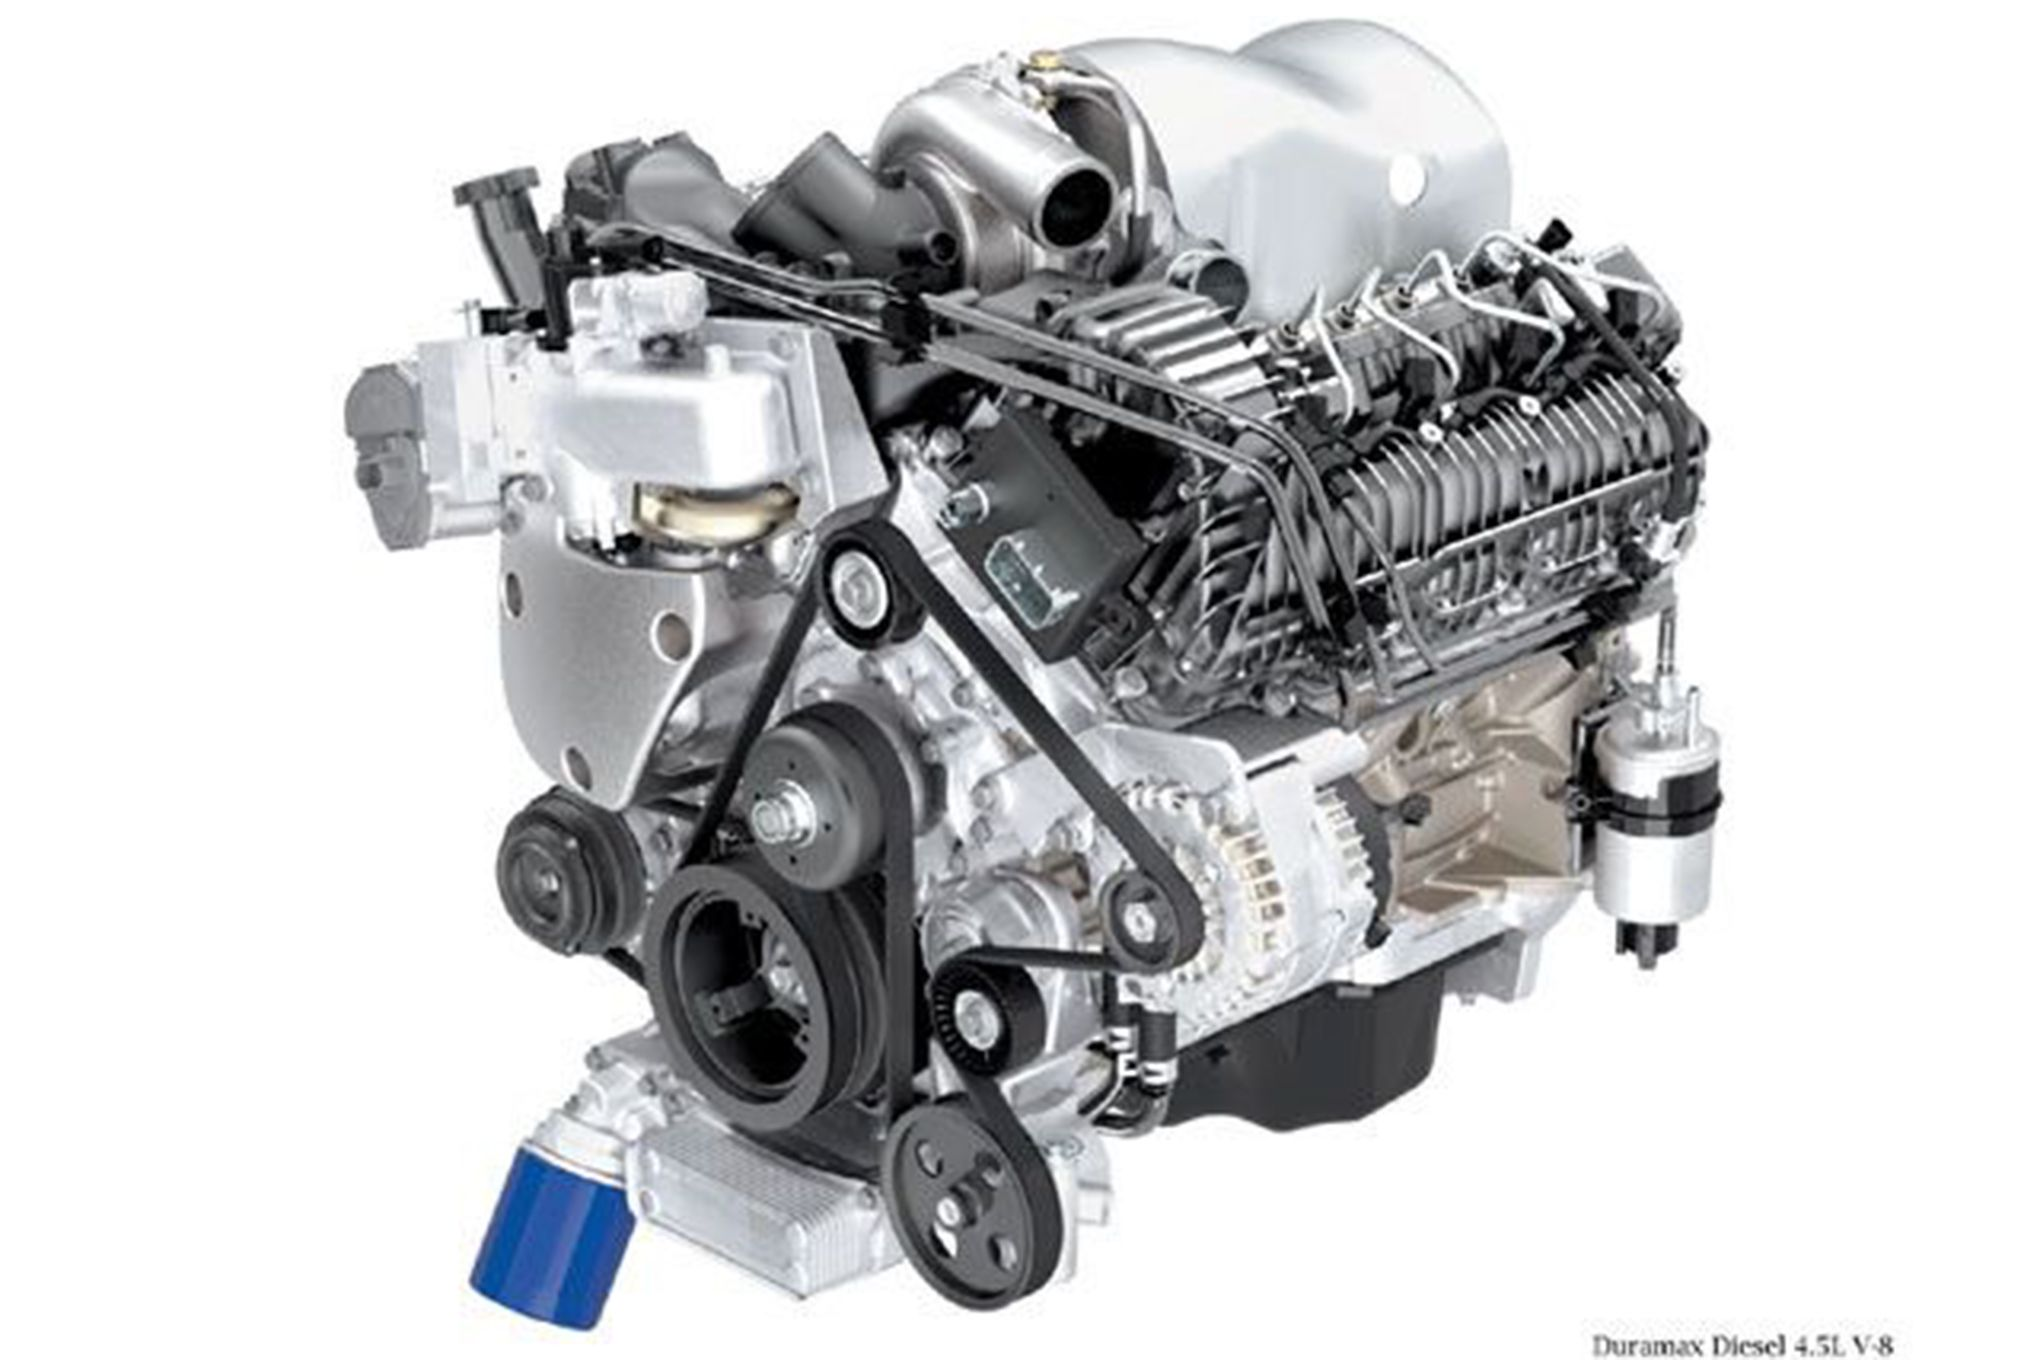 Litre Diesel Gm Duramax 4 5l V 8 Lmk Diesel Engine Info Specs Wiki Gm Authority